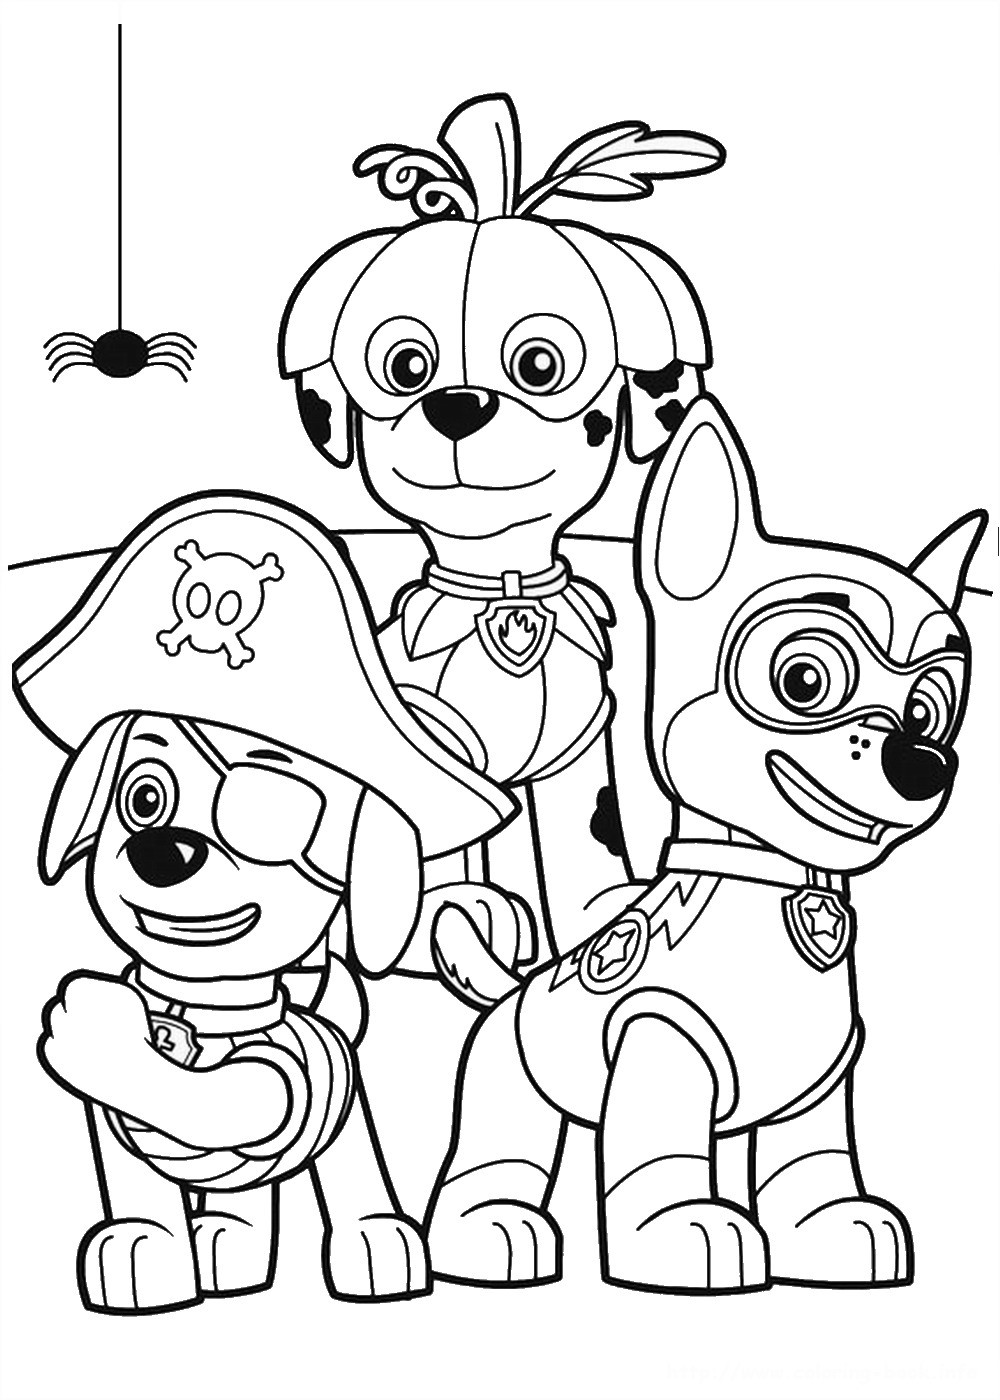 Best ideas about Free Coloring Pages Nickelodeon . Save or Pin Free Nick Jr Paw Patrol Coloring Pages Now.